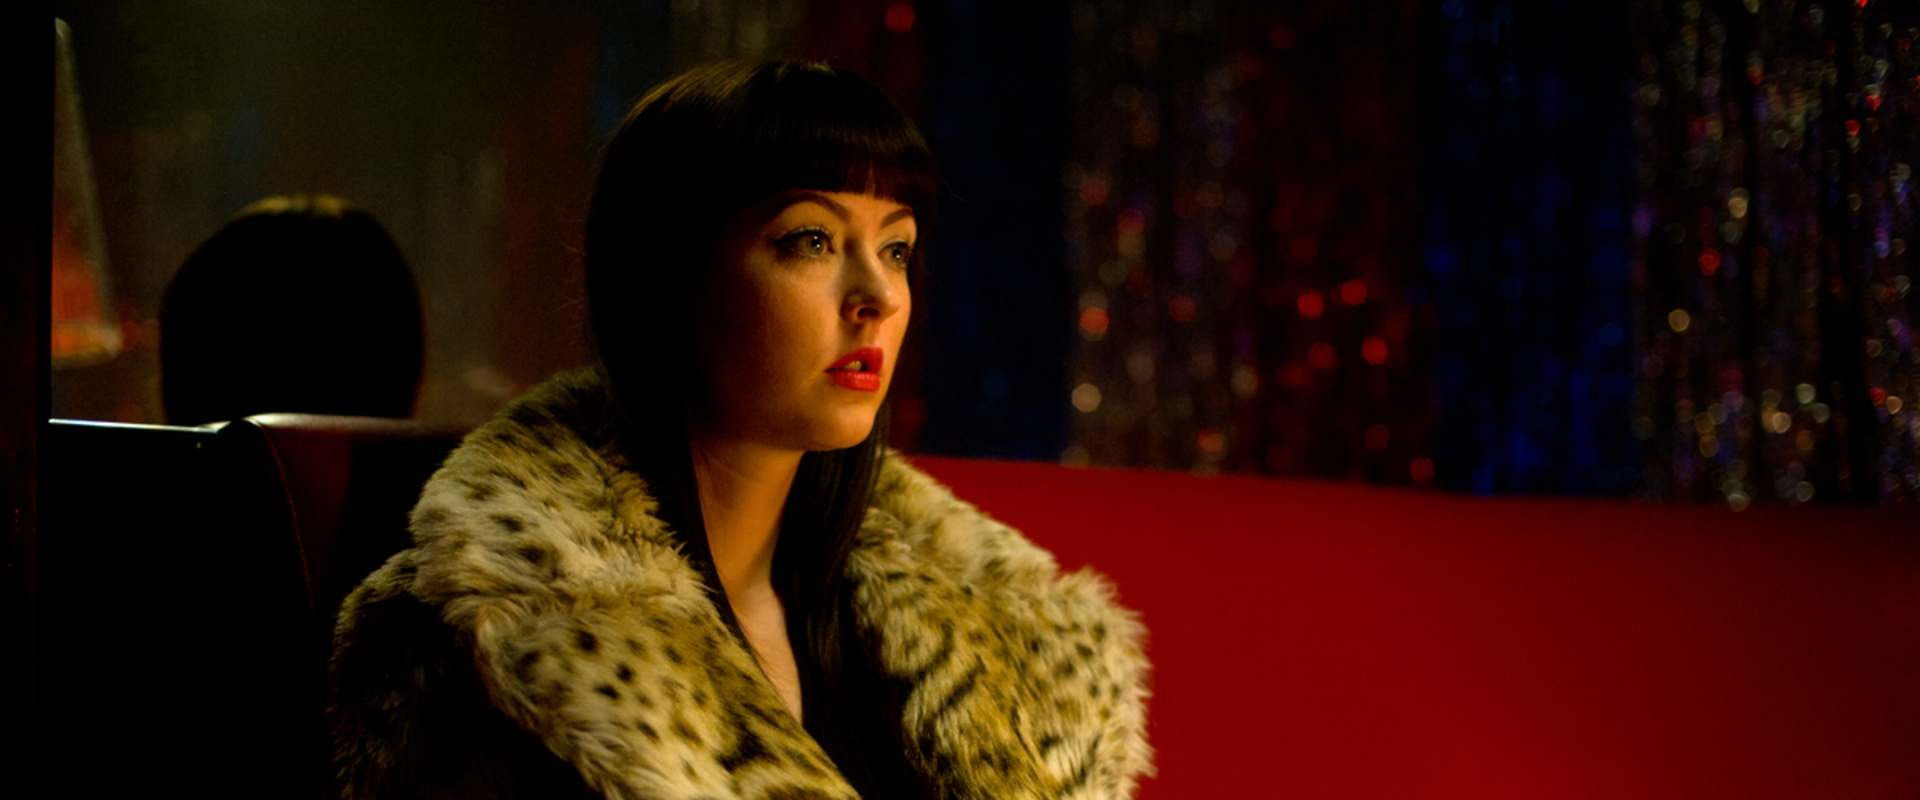 American Mary background 1